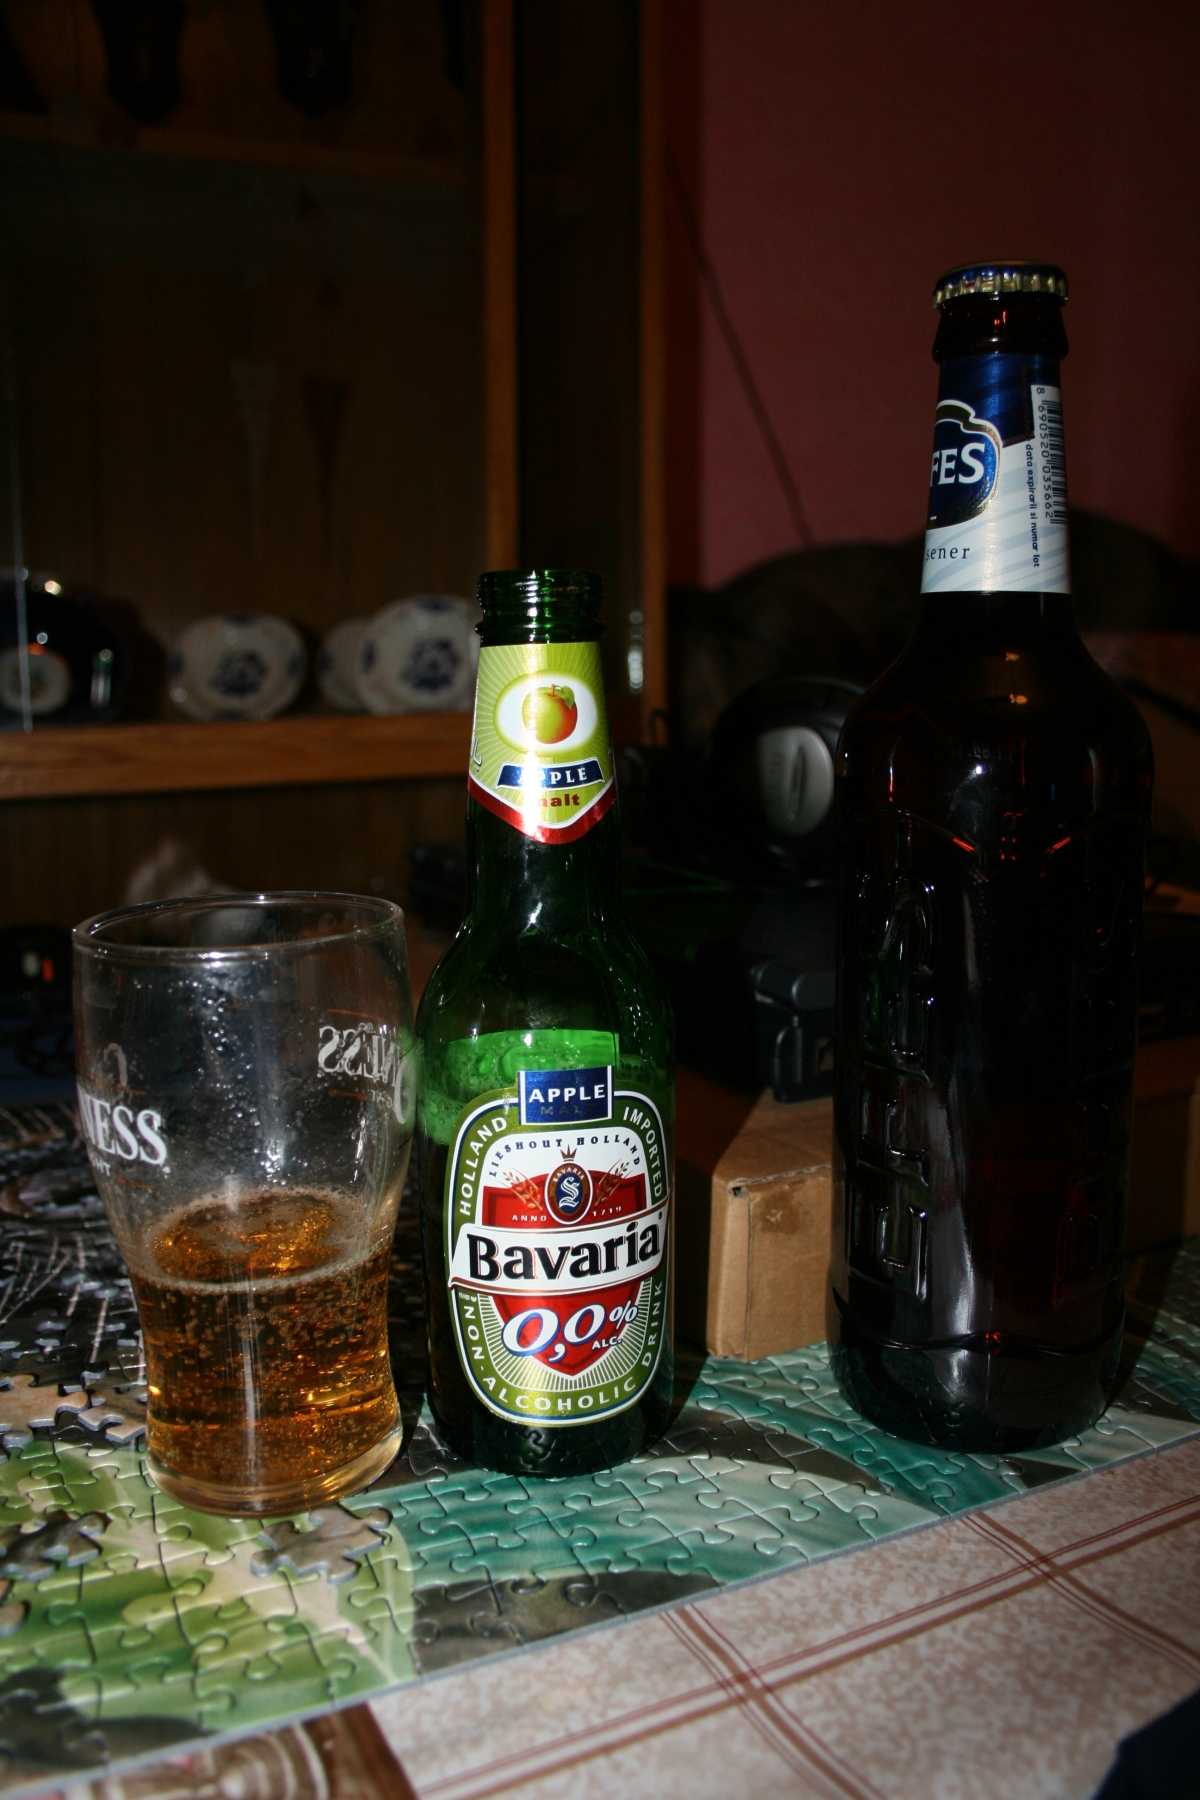 bavaria apple beer